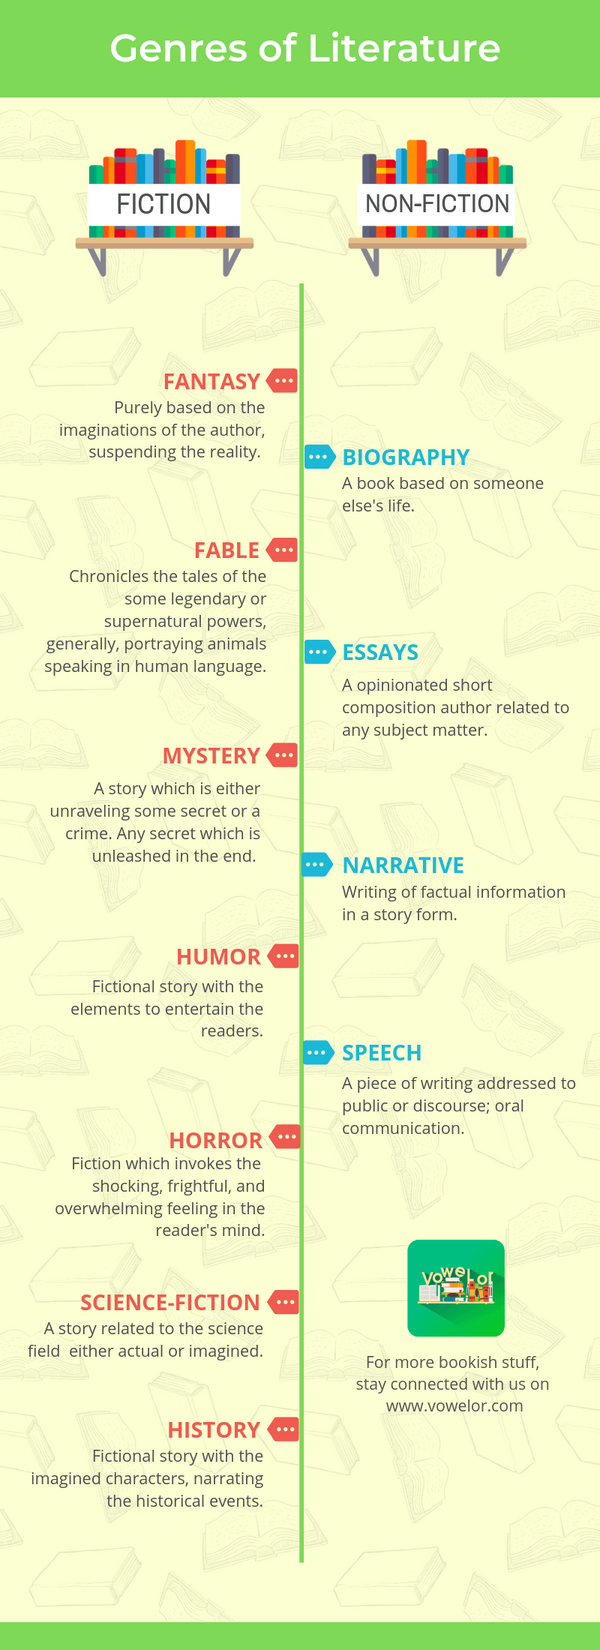 Types of Genres of Literature Inforgraphic.png